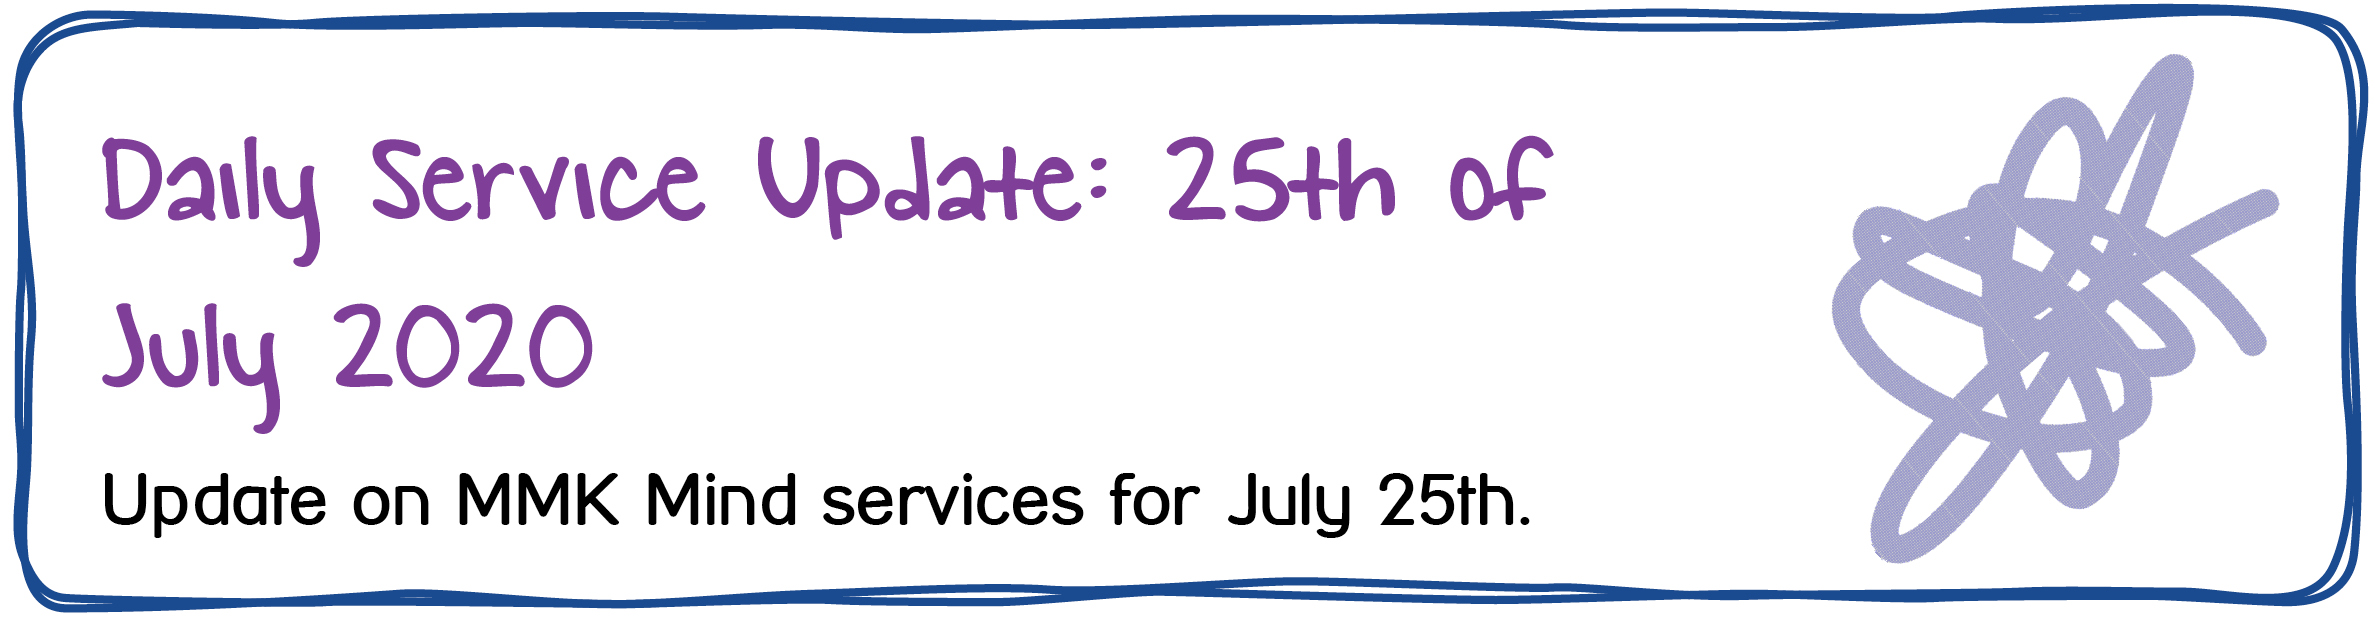 Daily Service Update: 25th of July 2020. Update on MMK Mind services for July 25th.